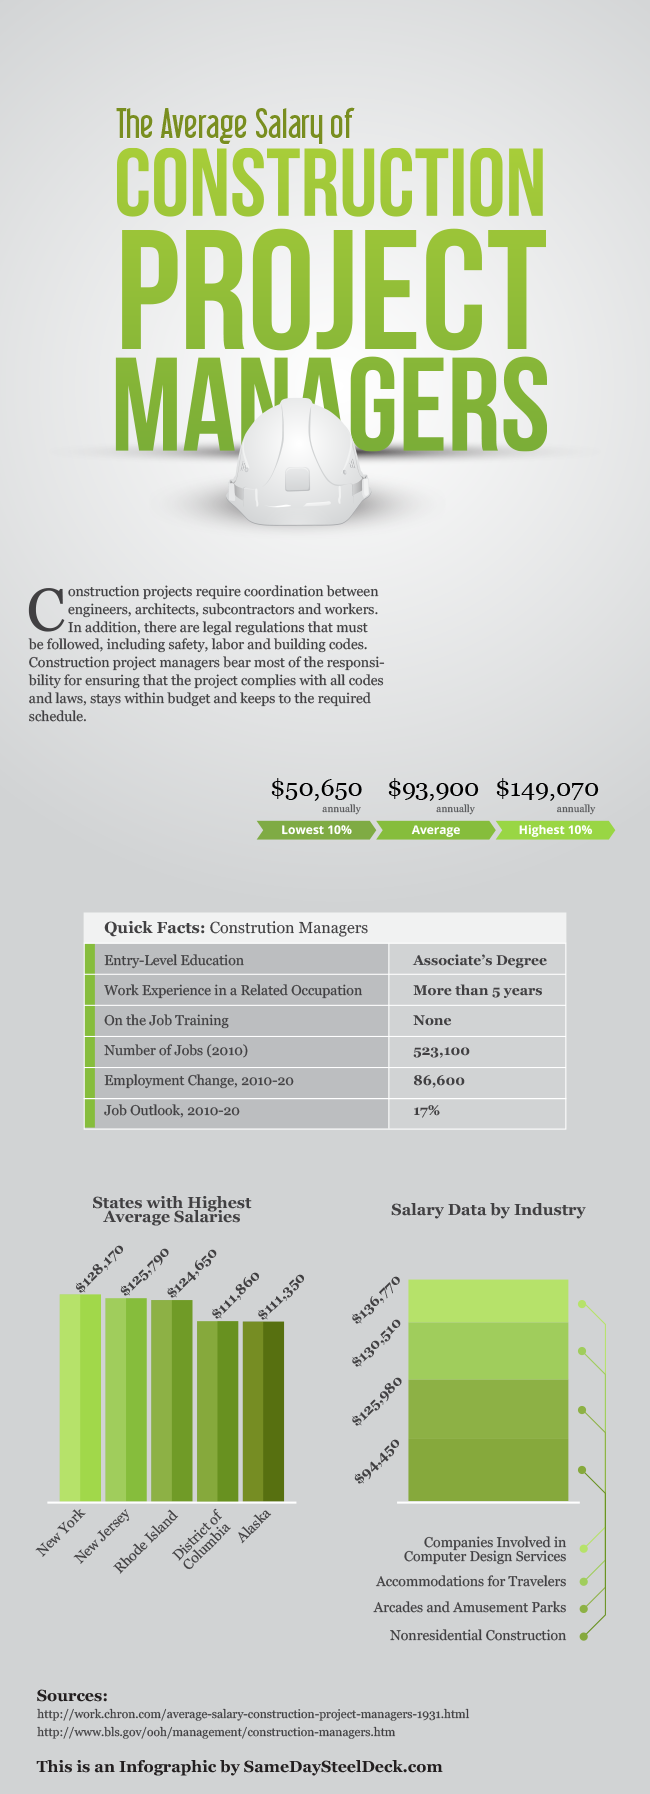 The Average Salary of Construction Project Managers. An